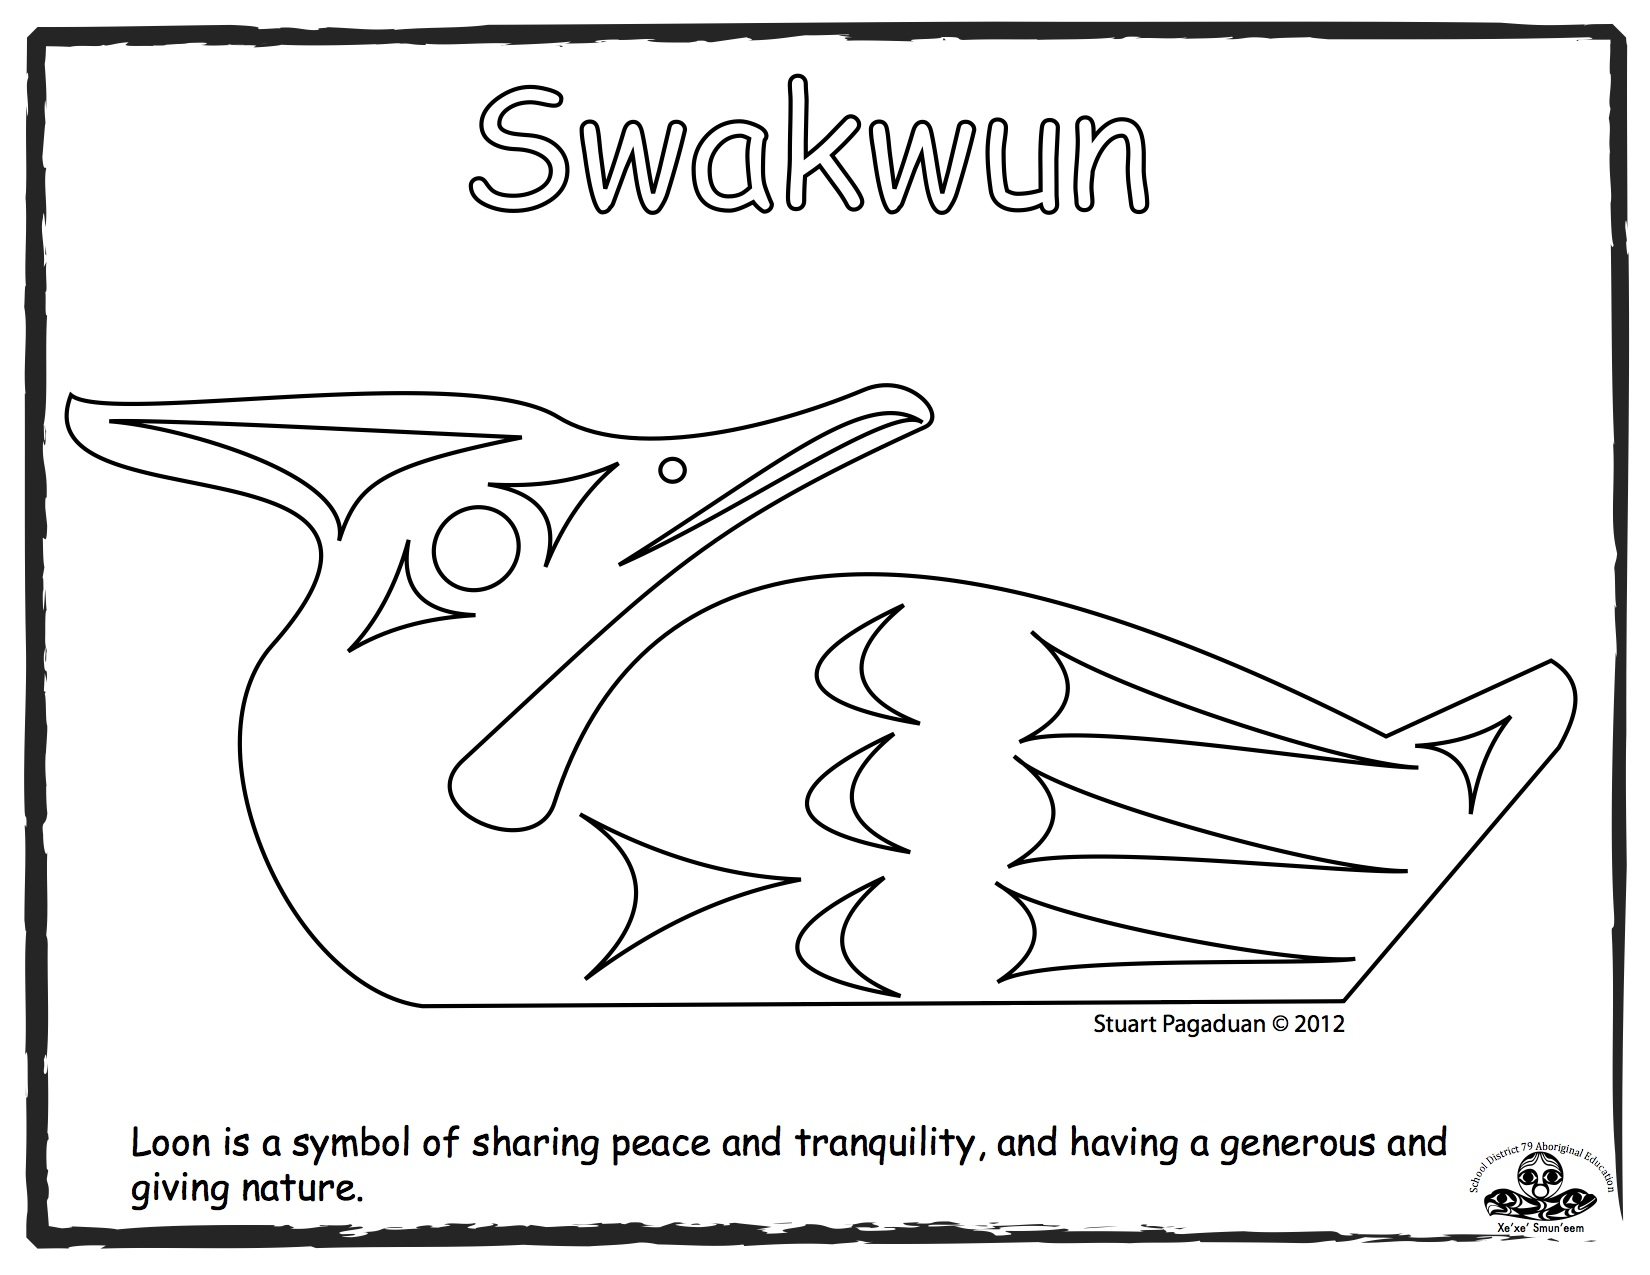 loon-swakwun-basic-outline